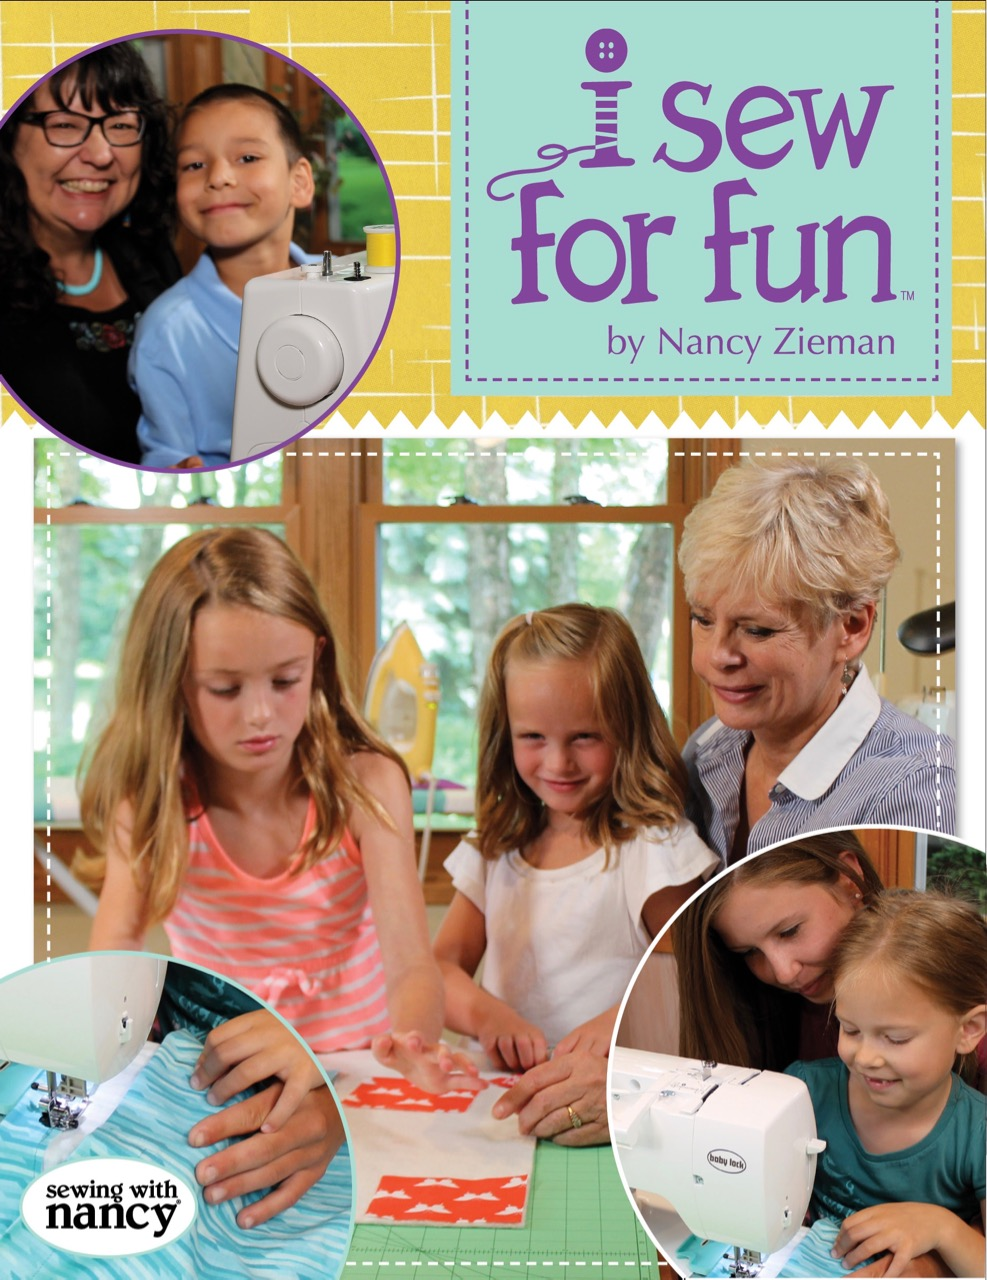 I Sew For Fun Book Cover Image